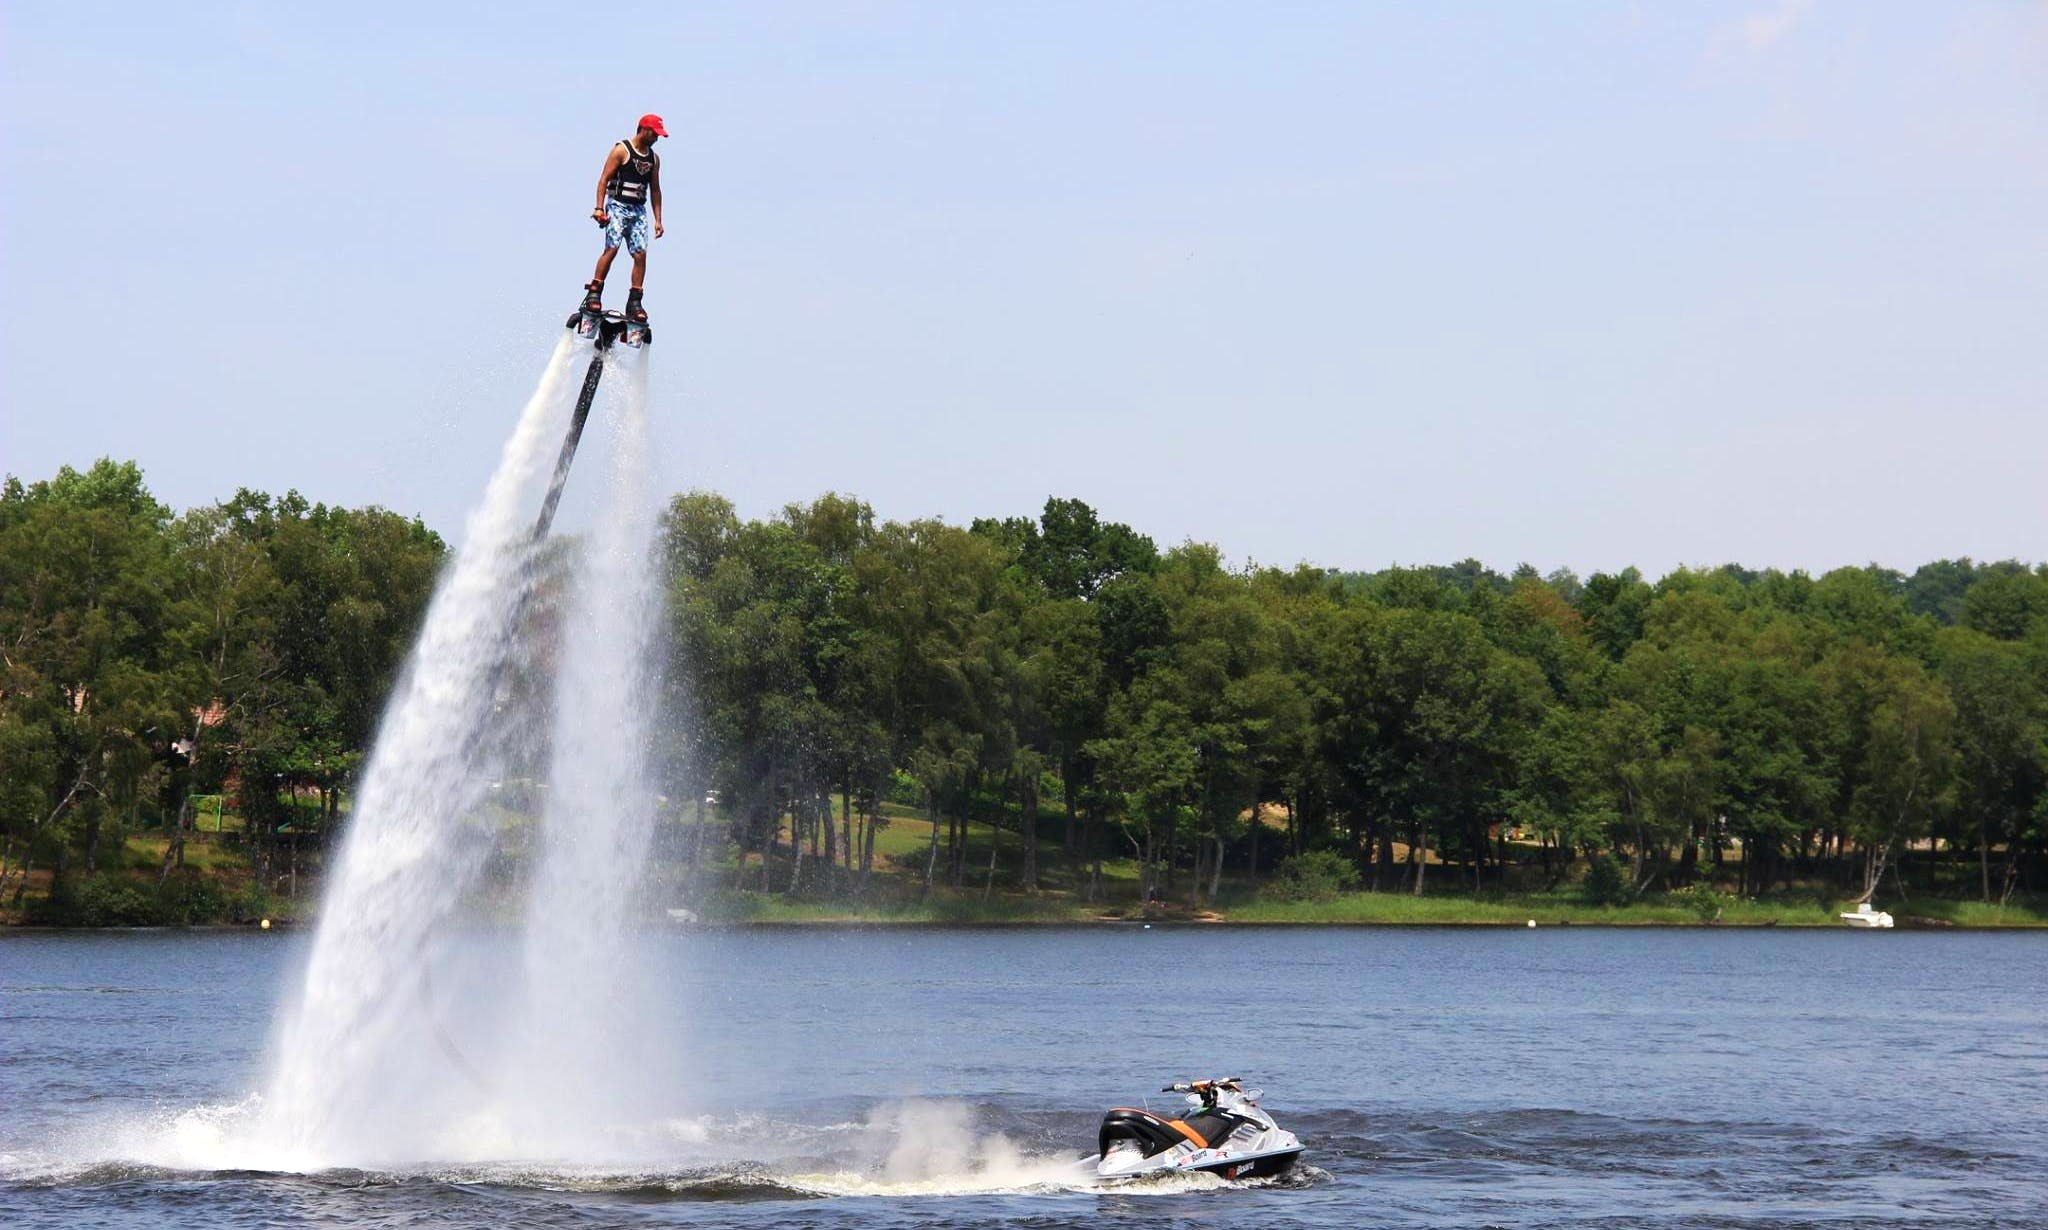 Enjoy Flyboarding in Montsauche-les-Settons, France